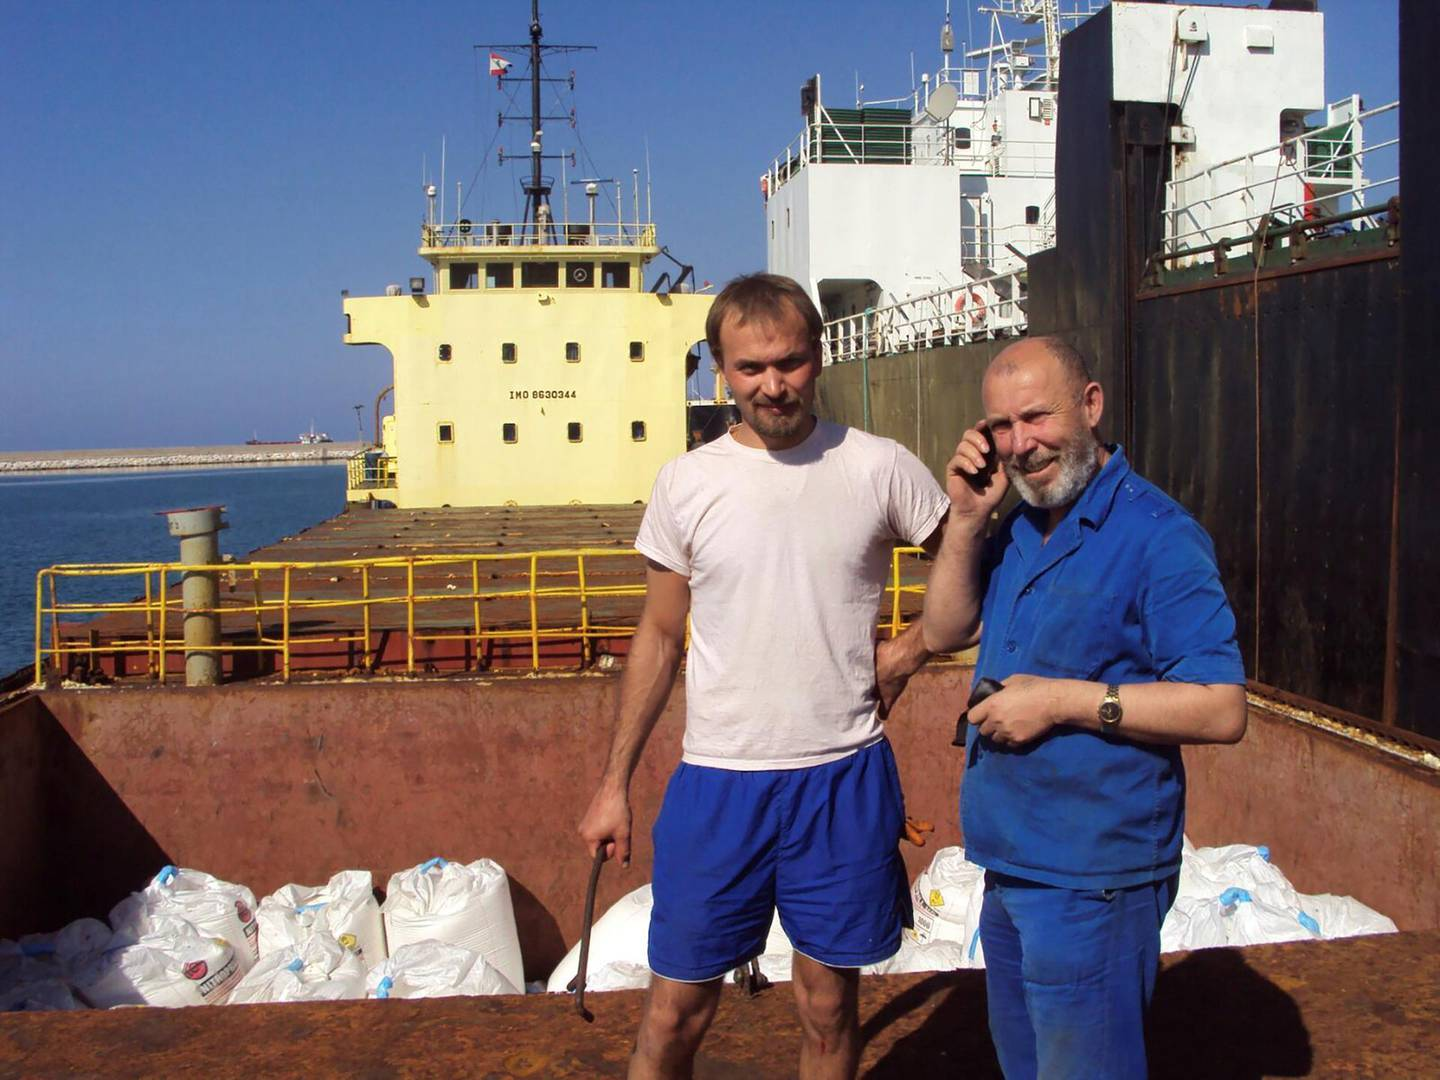 Boris Prokoshev (R), captain of cargo vessel Rhosus, and boatswain Boris Musinchak pose next to a freight hold loaded with ammonium nitrate in the port of Beirut, Lebanon, in a summer 2014 photograph. Picture taken in summer 2014. REUTERS/Personal archives of Boris Musinchak